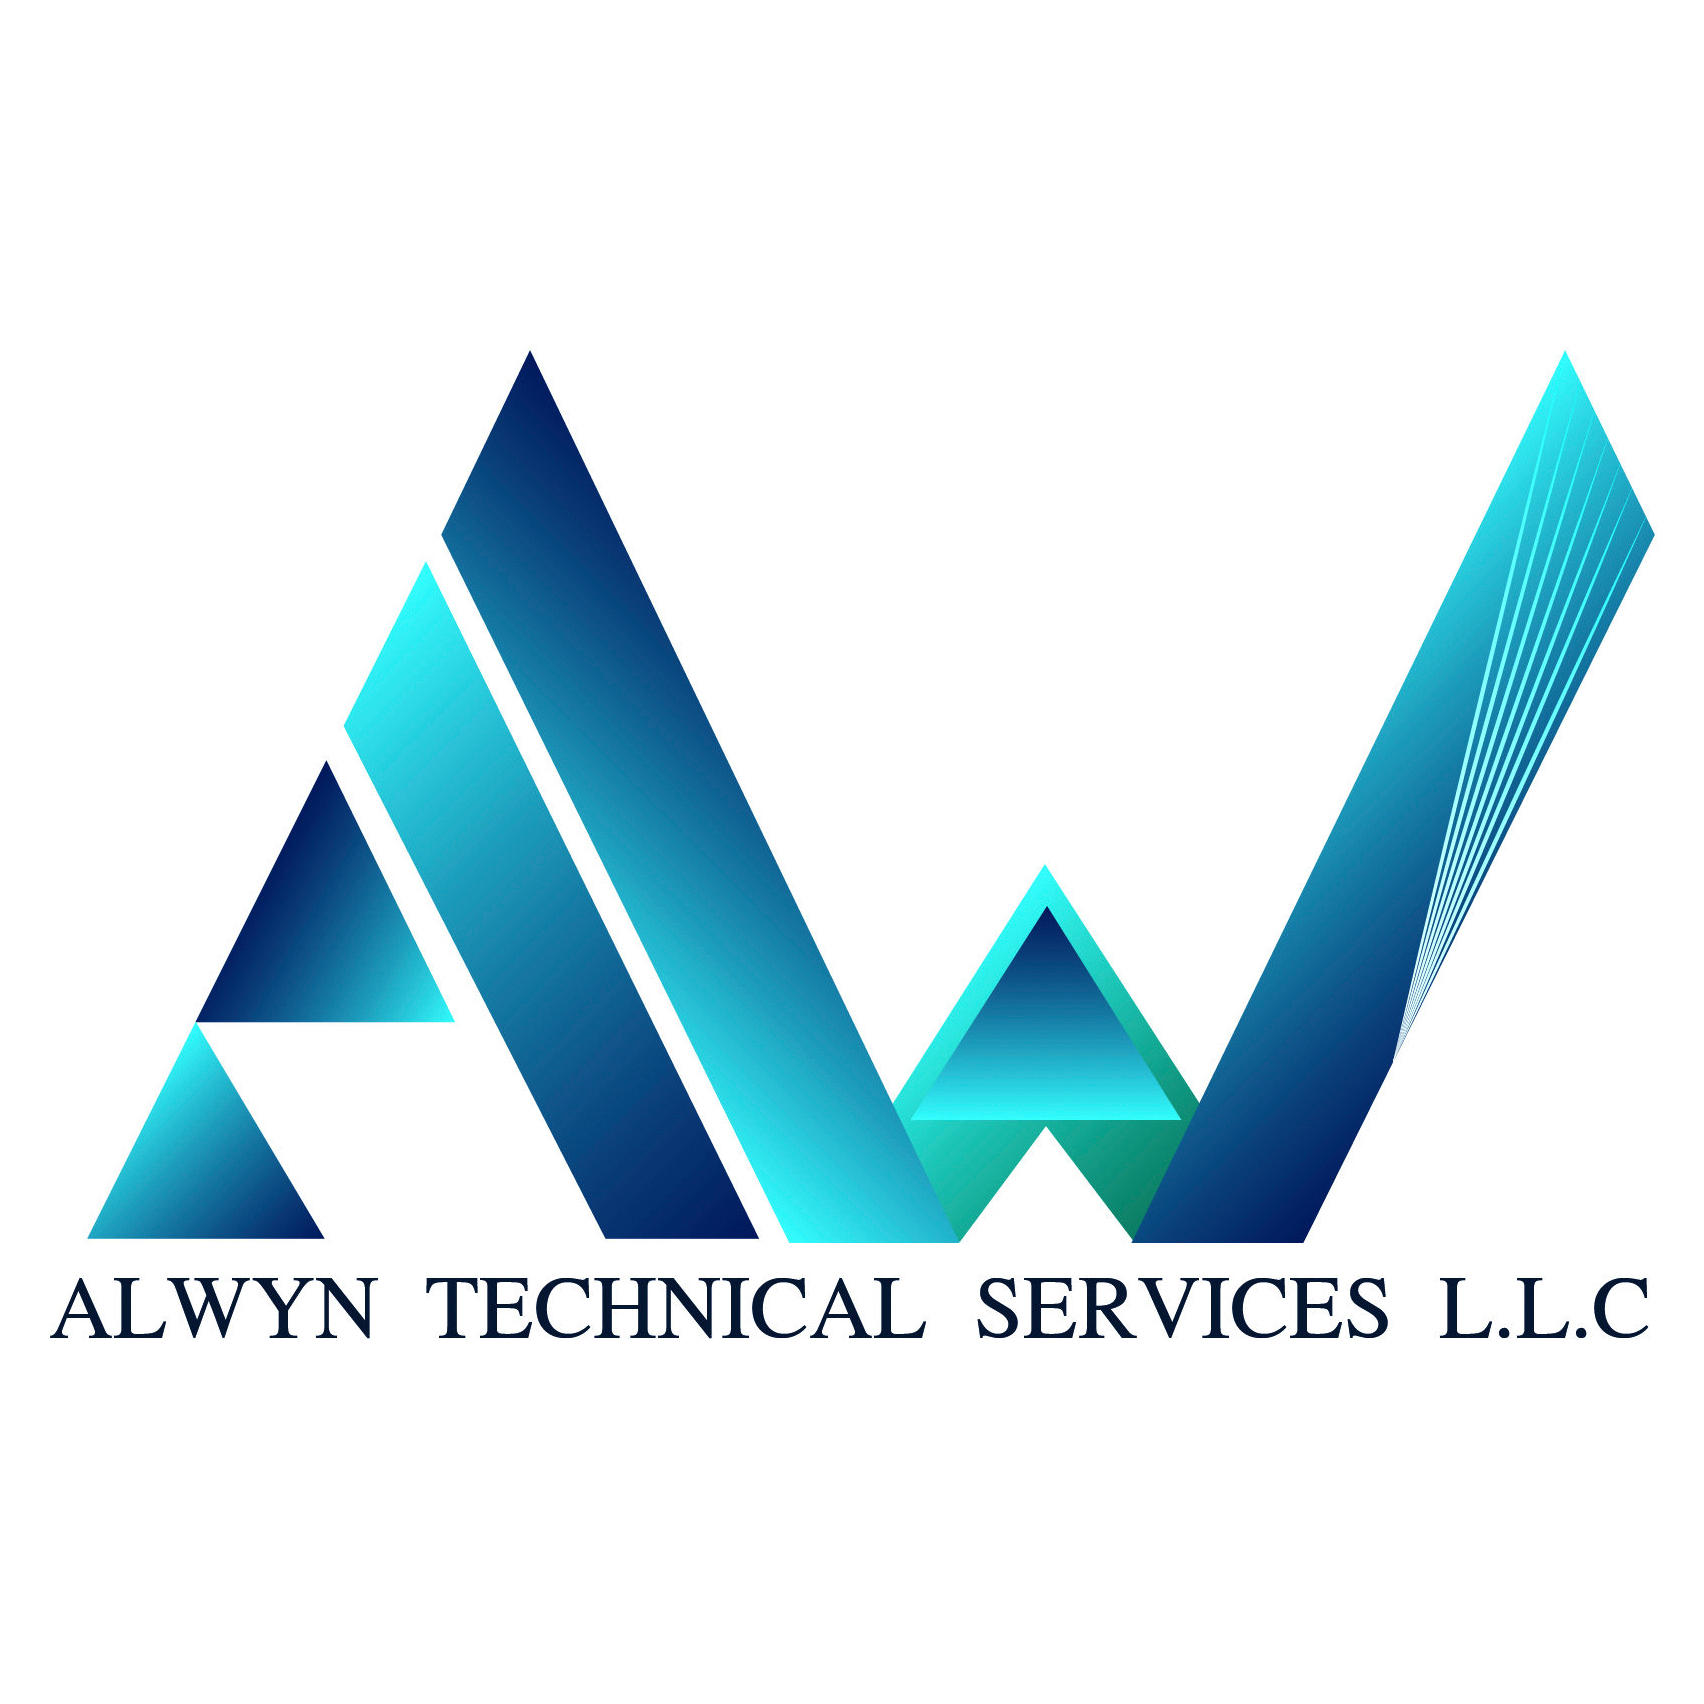 Alwyn Technical Services L.L.C